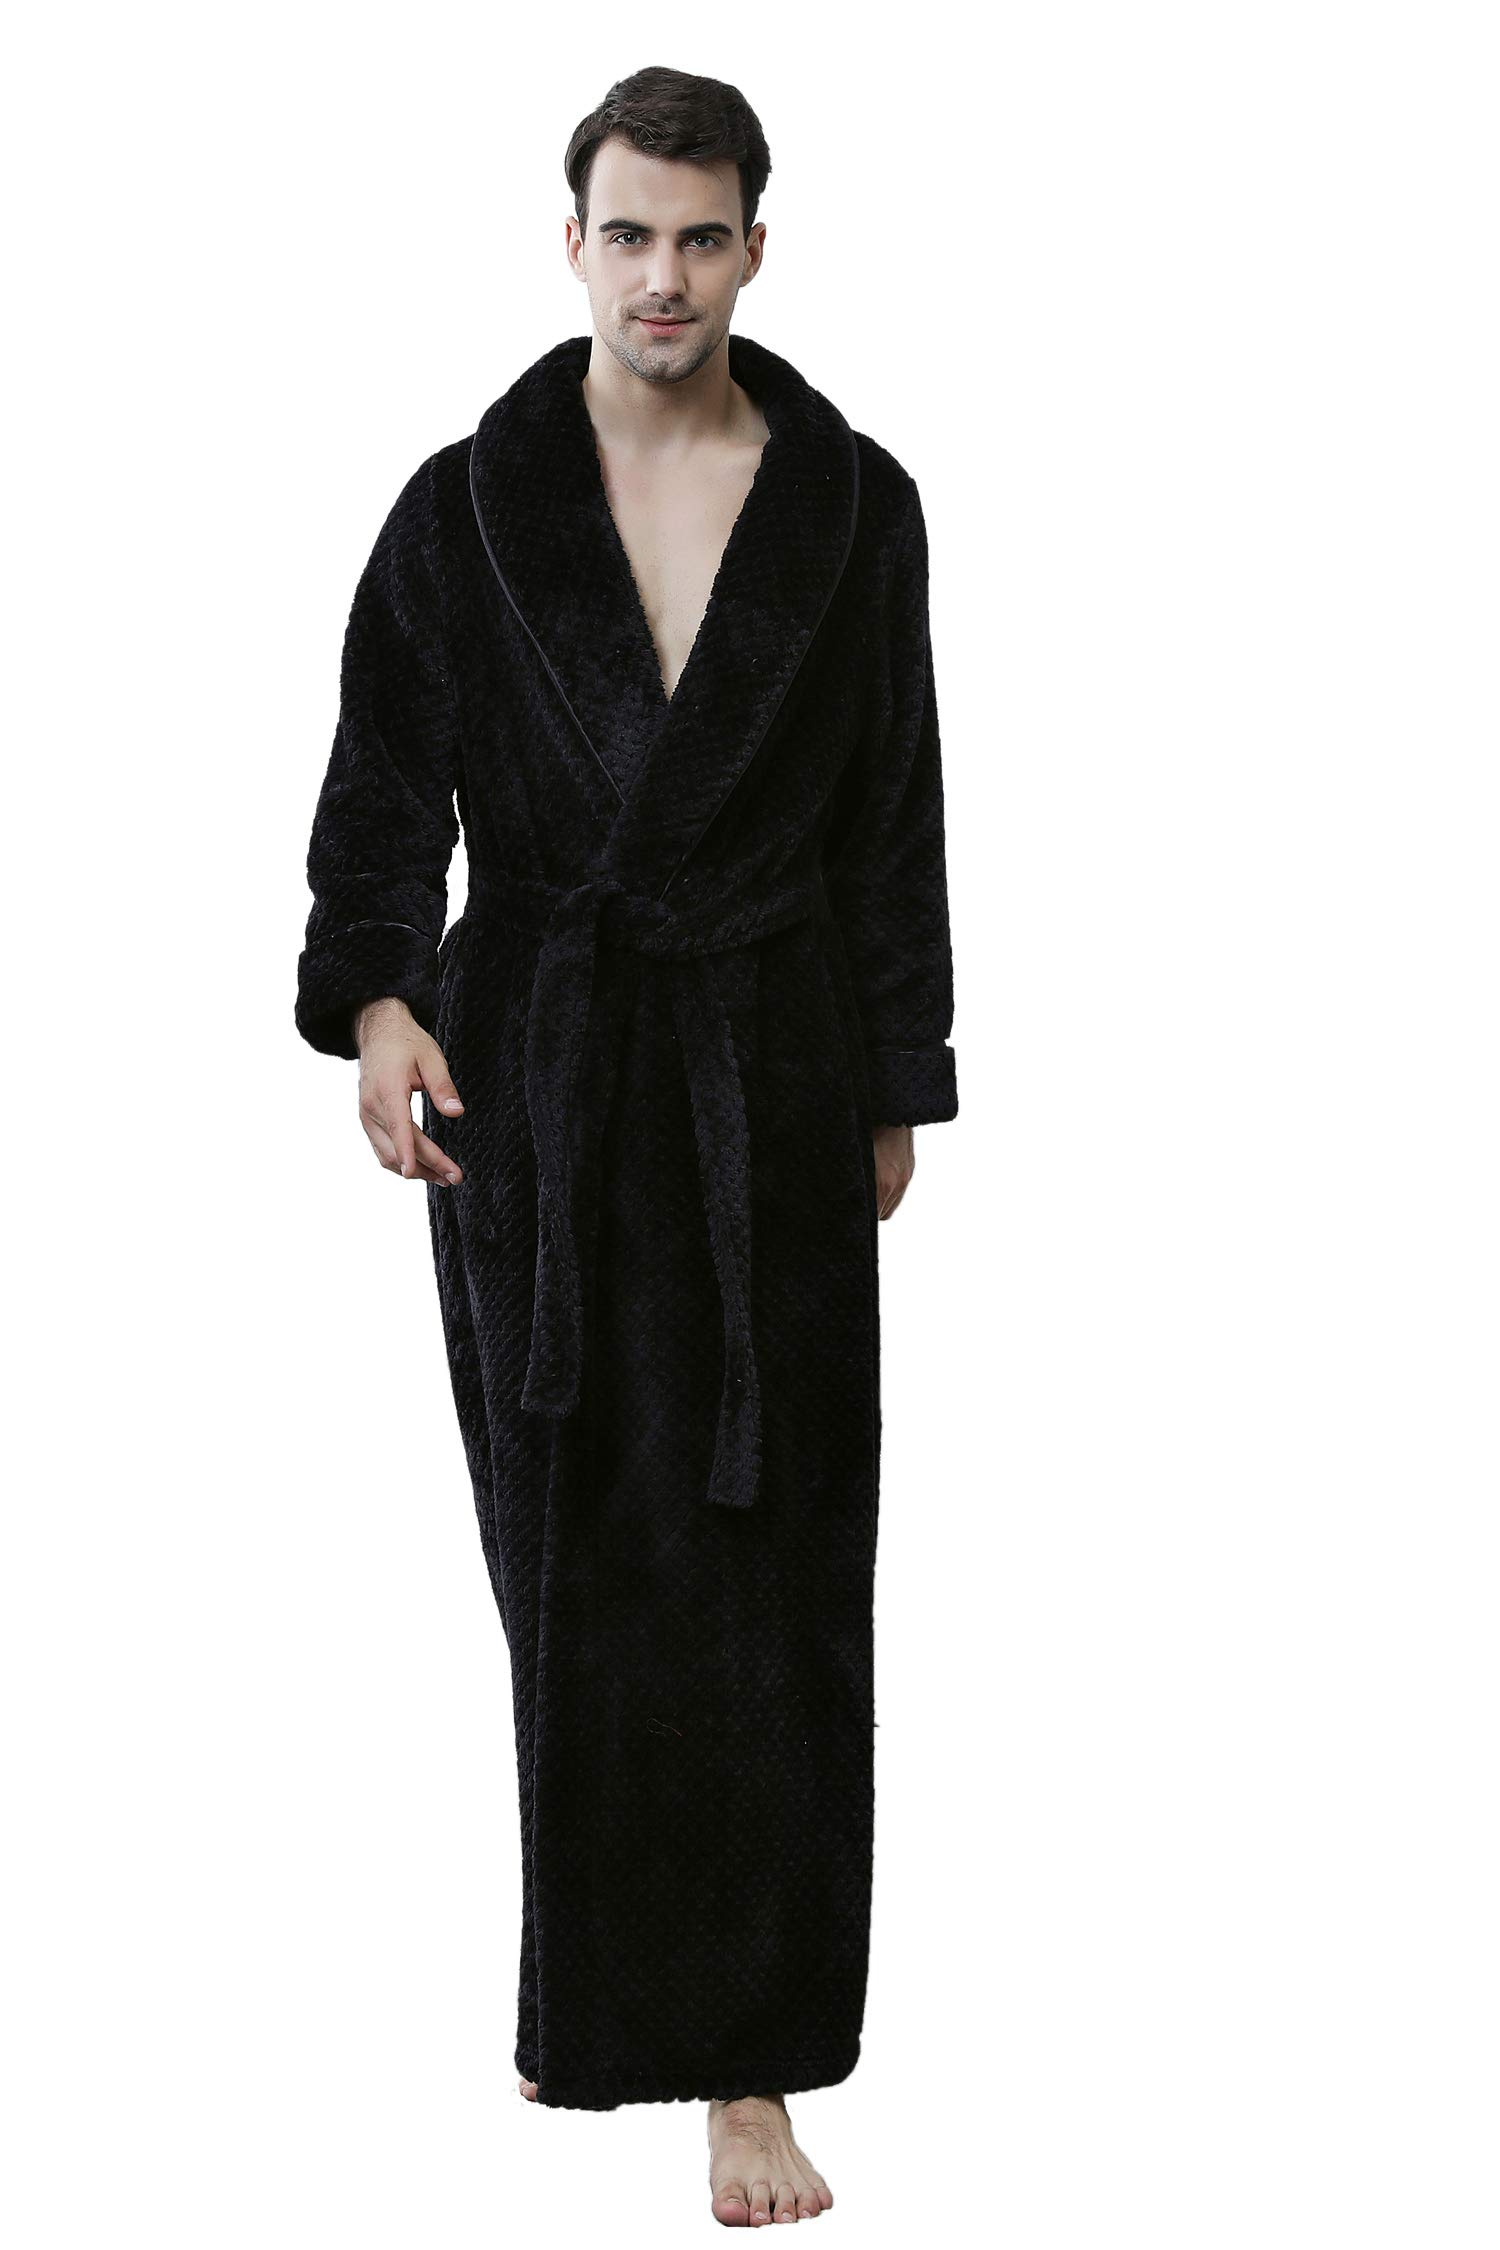 Cahayi Unisex Bathrobe Women Men Winter Thick Warm Long Robe Sleepwear Housecoat